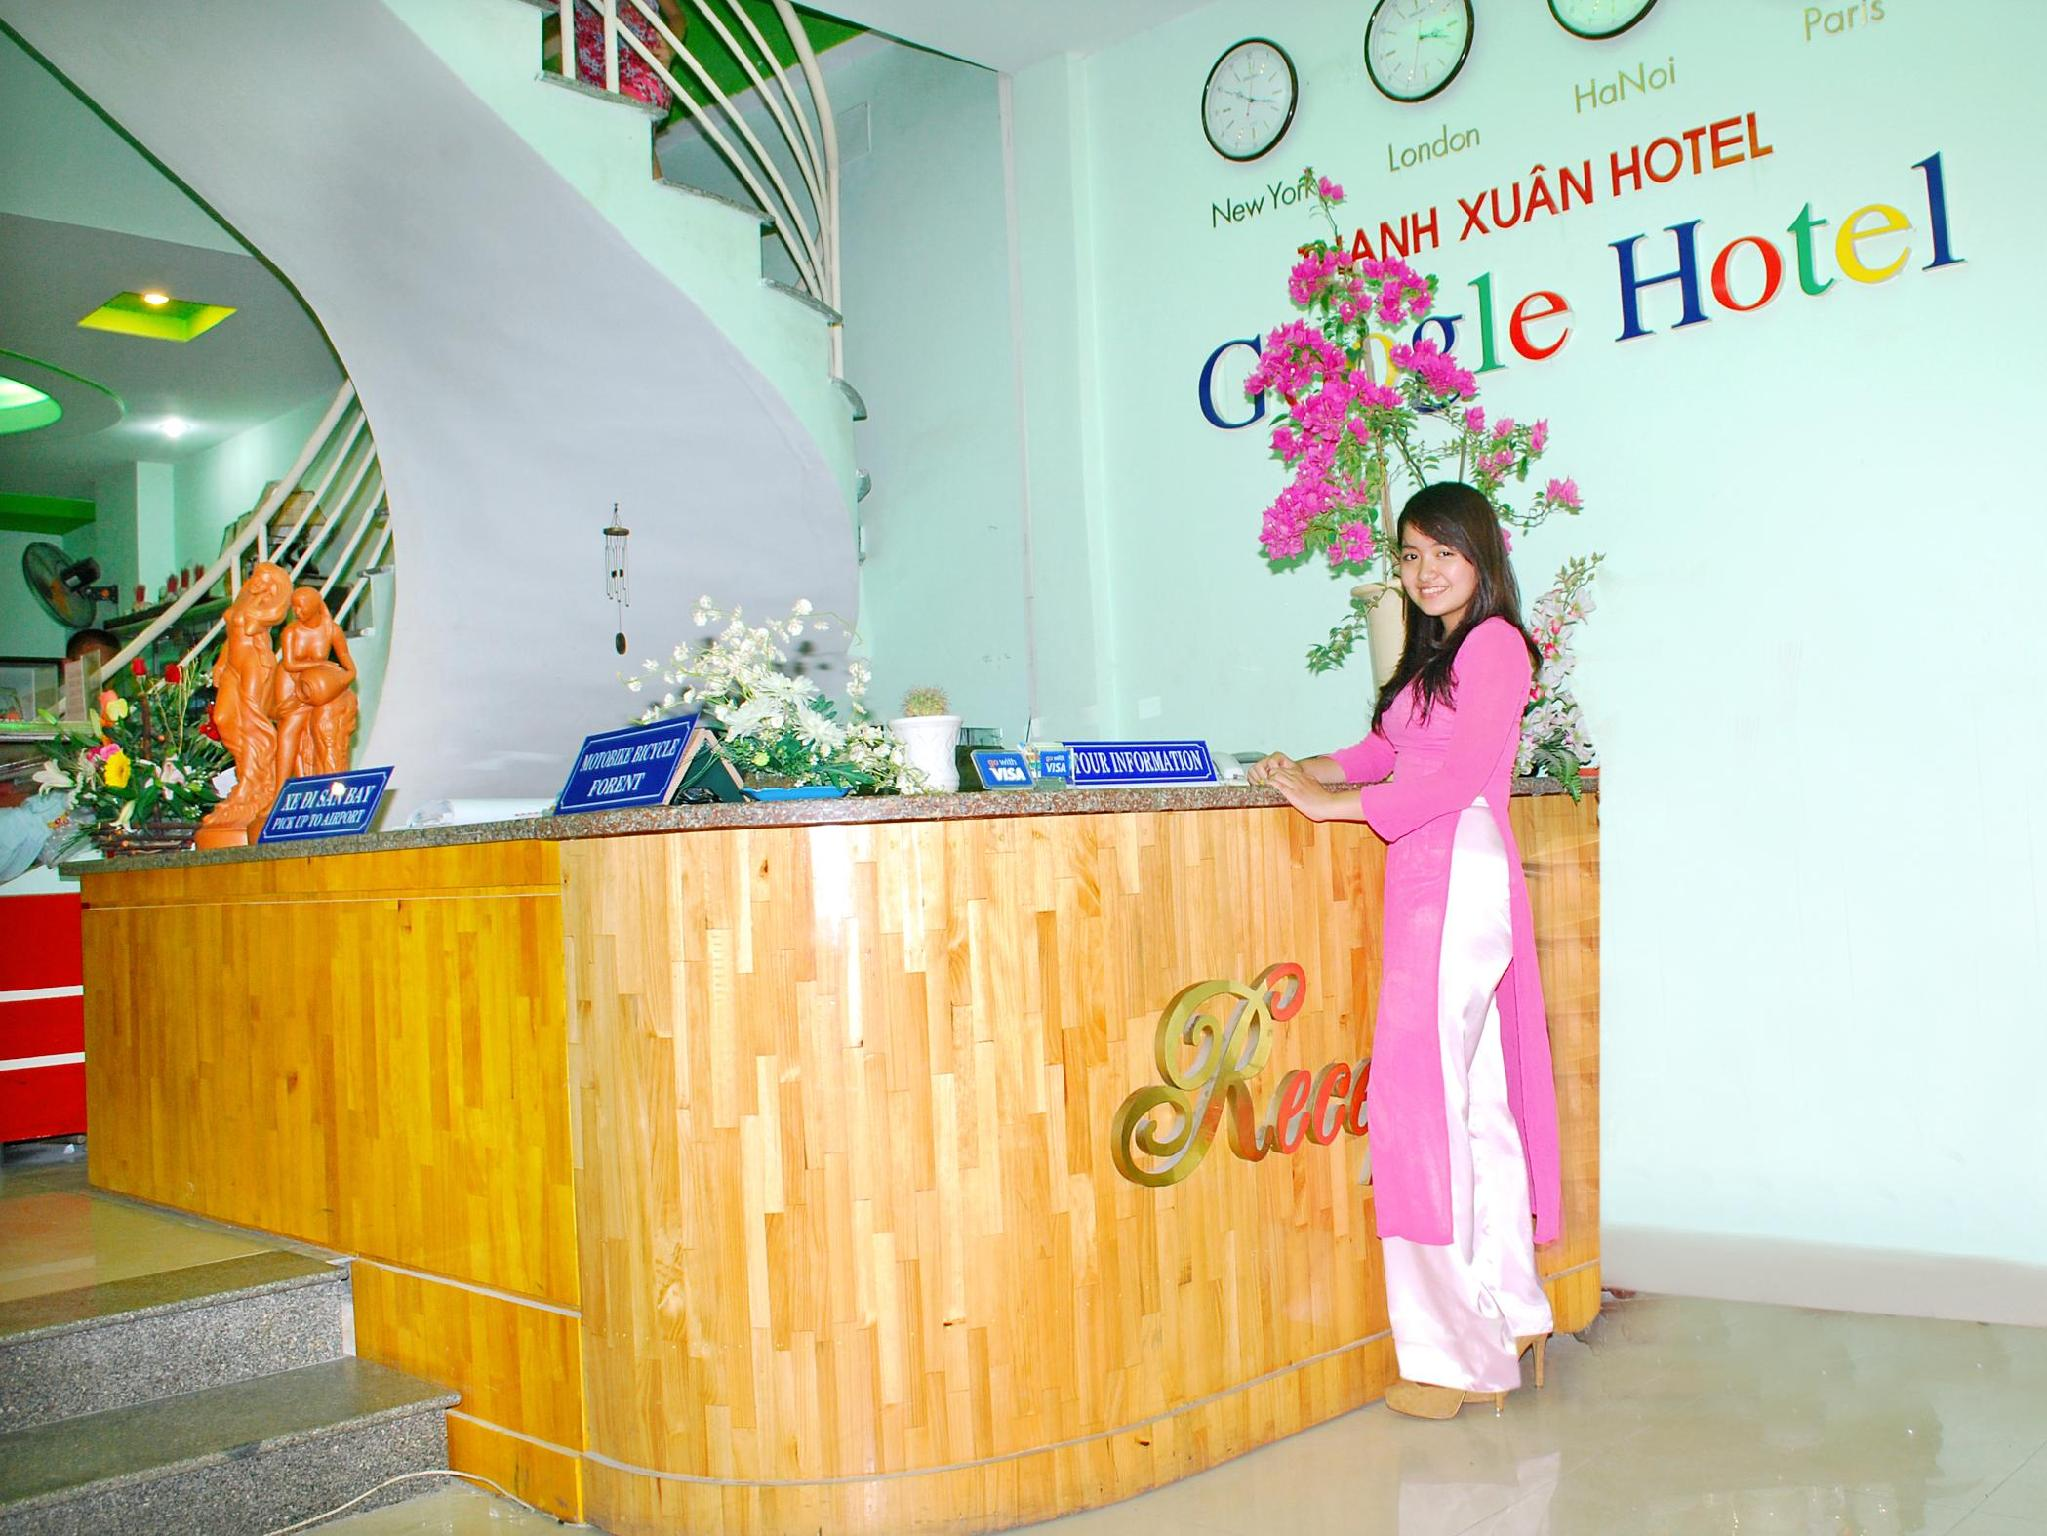 Hotell Thanh Xuan Hotel Hue